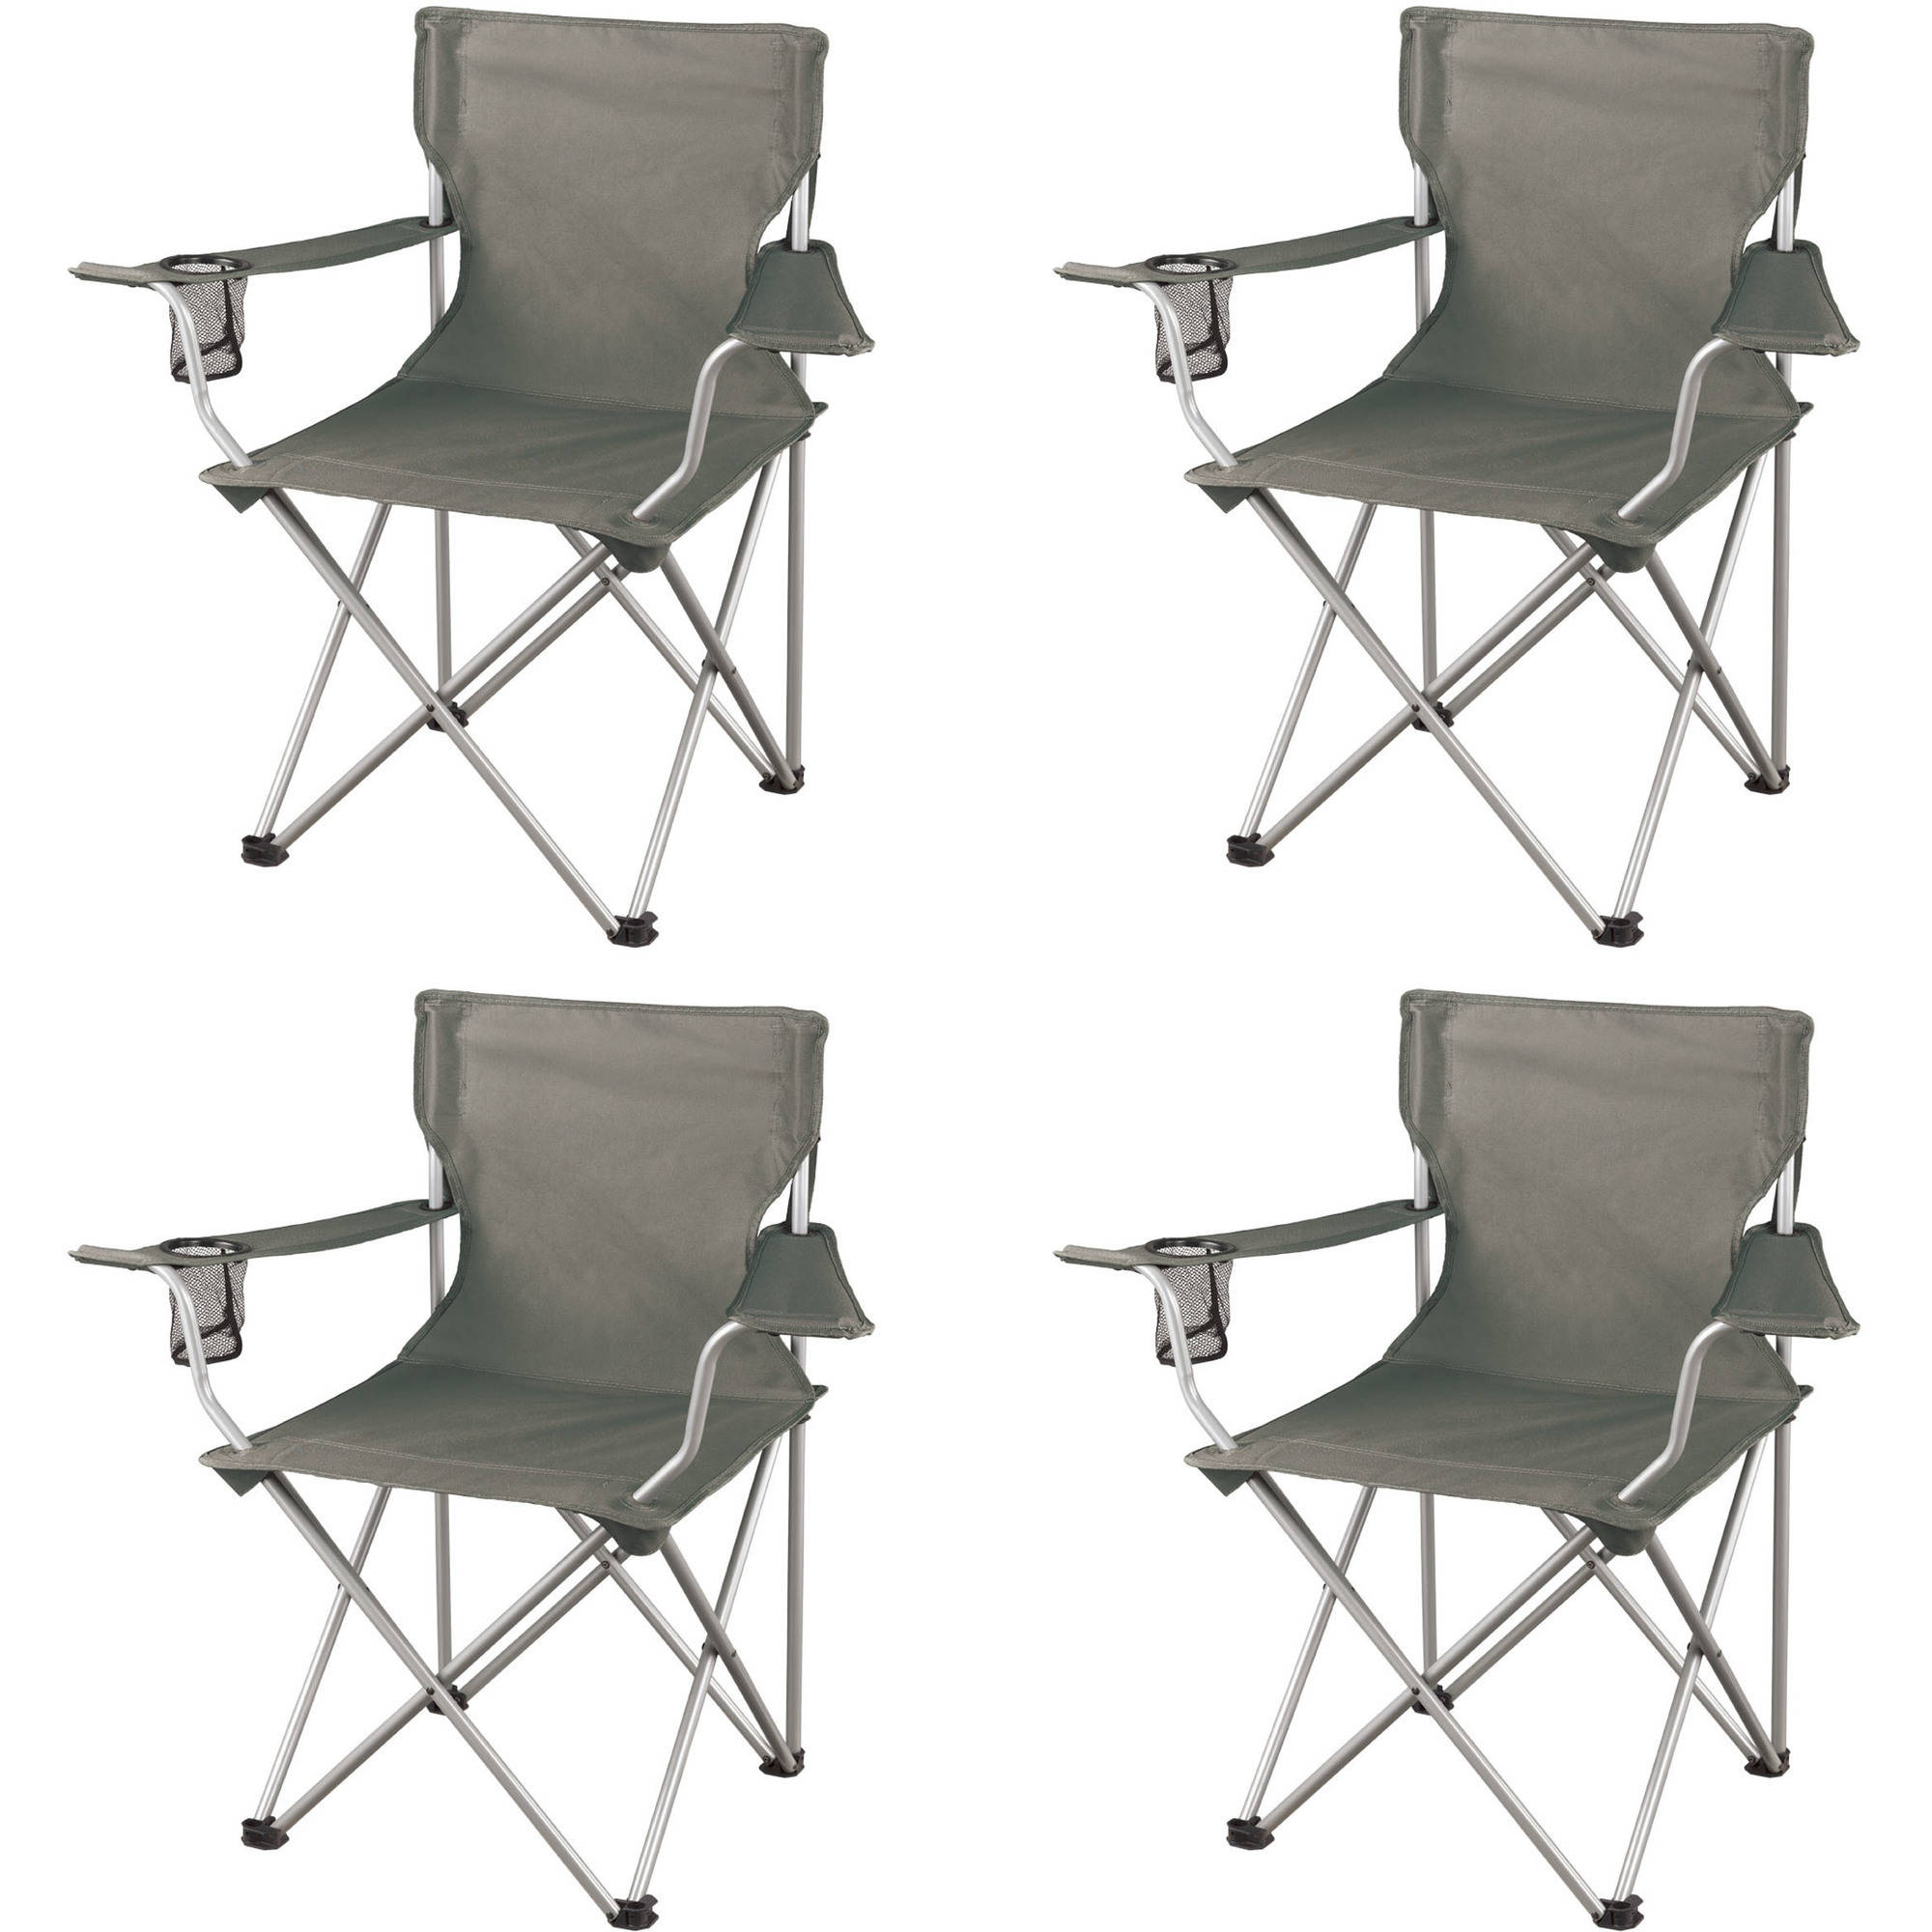 game fishing chair for sale nz outdoor double rocking camping chairs ozark trail classic folding camp set of 4